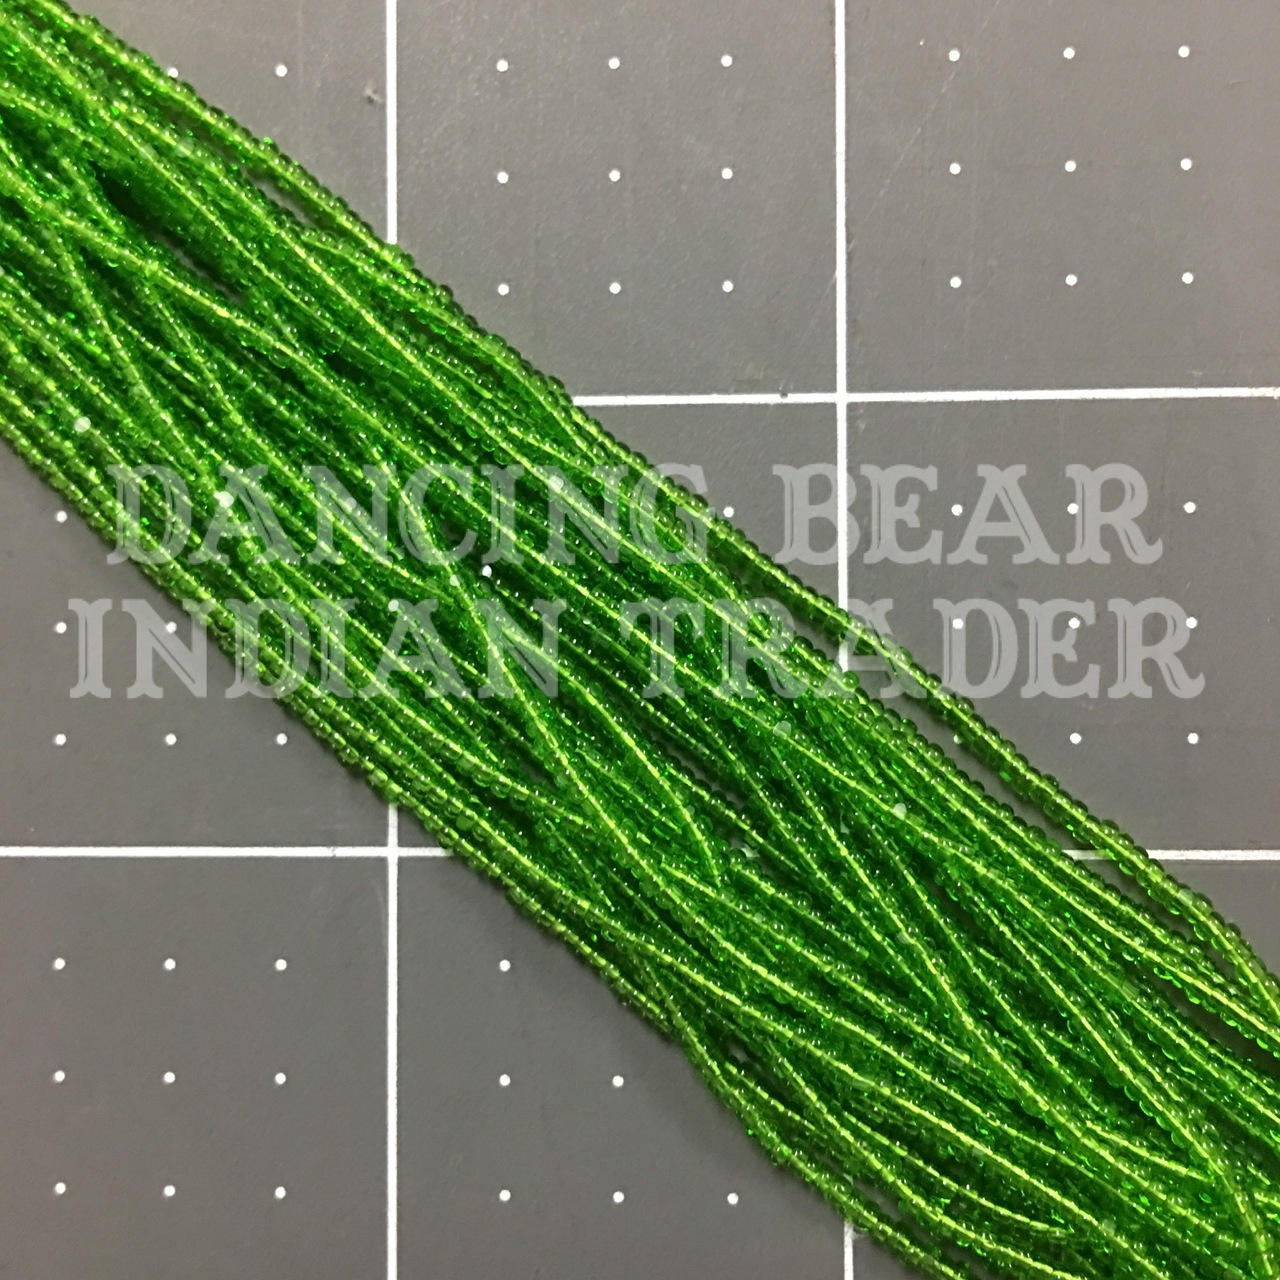 13c-206TR Light Kelly Green